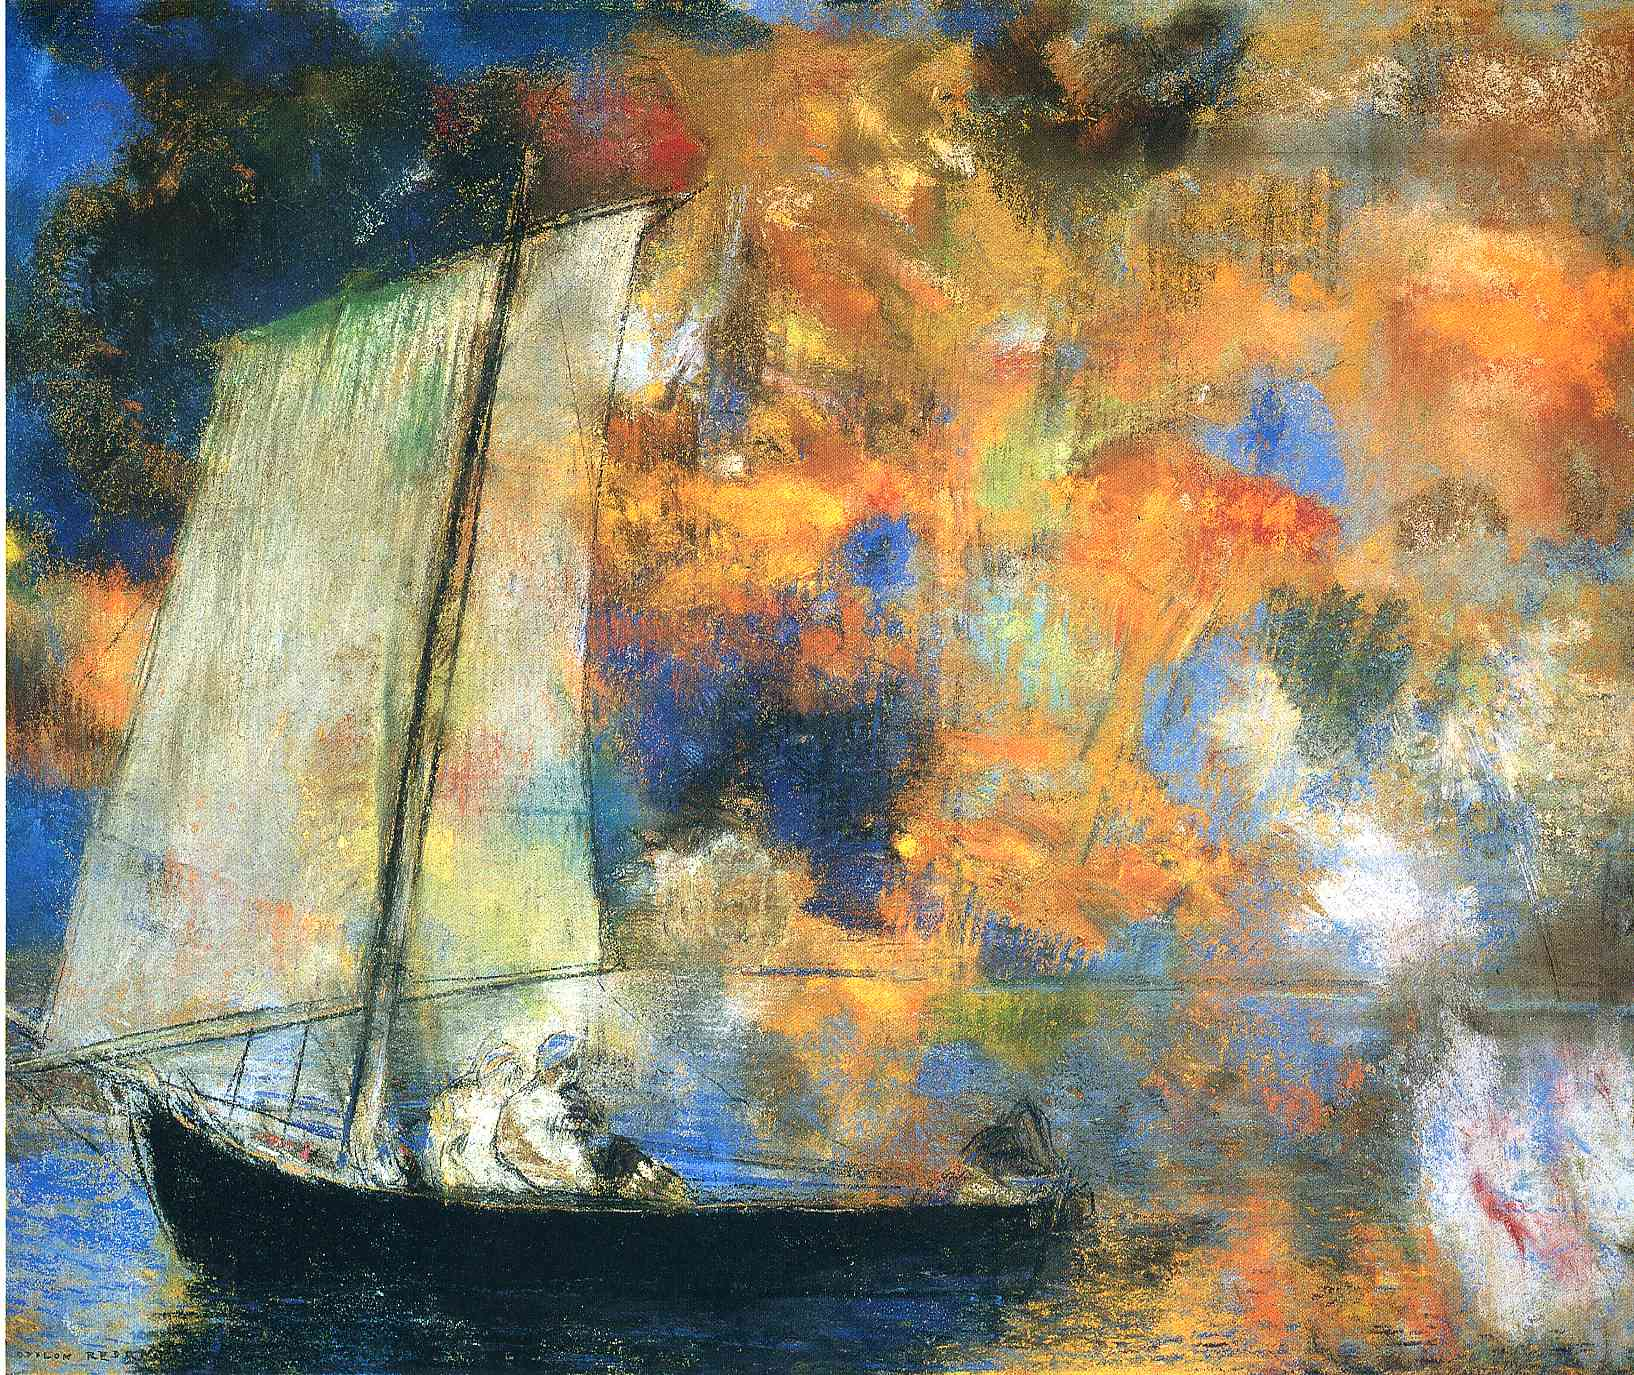 Flower Clouds by Odilon Redon, 1903